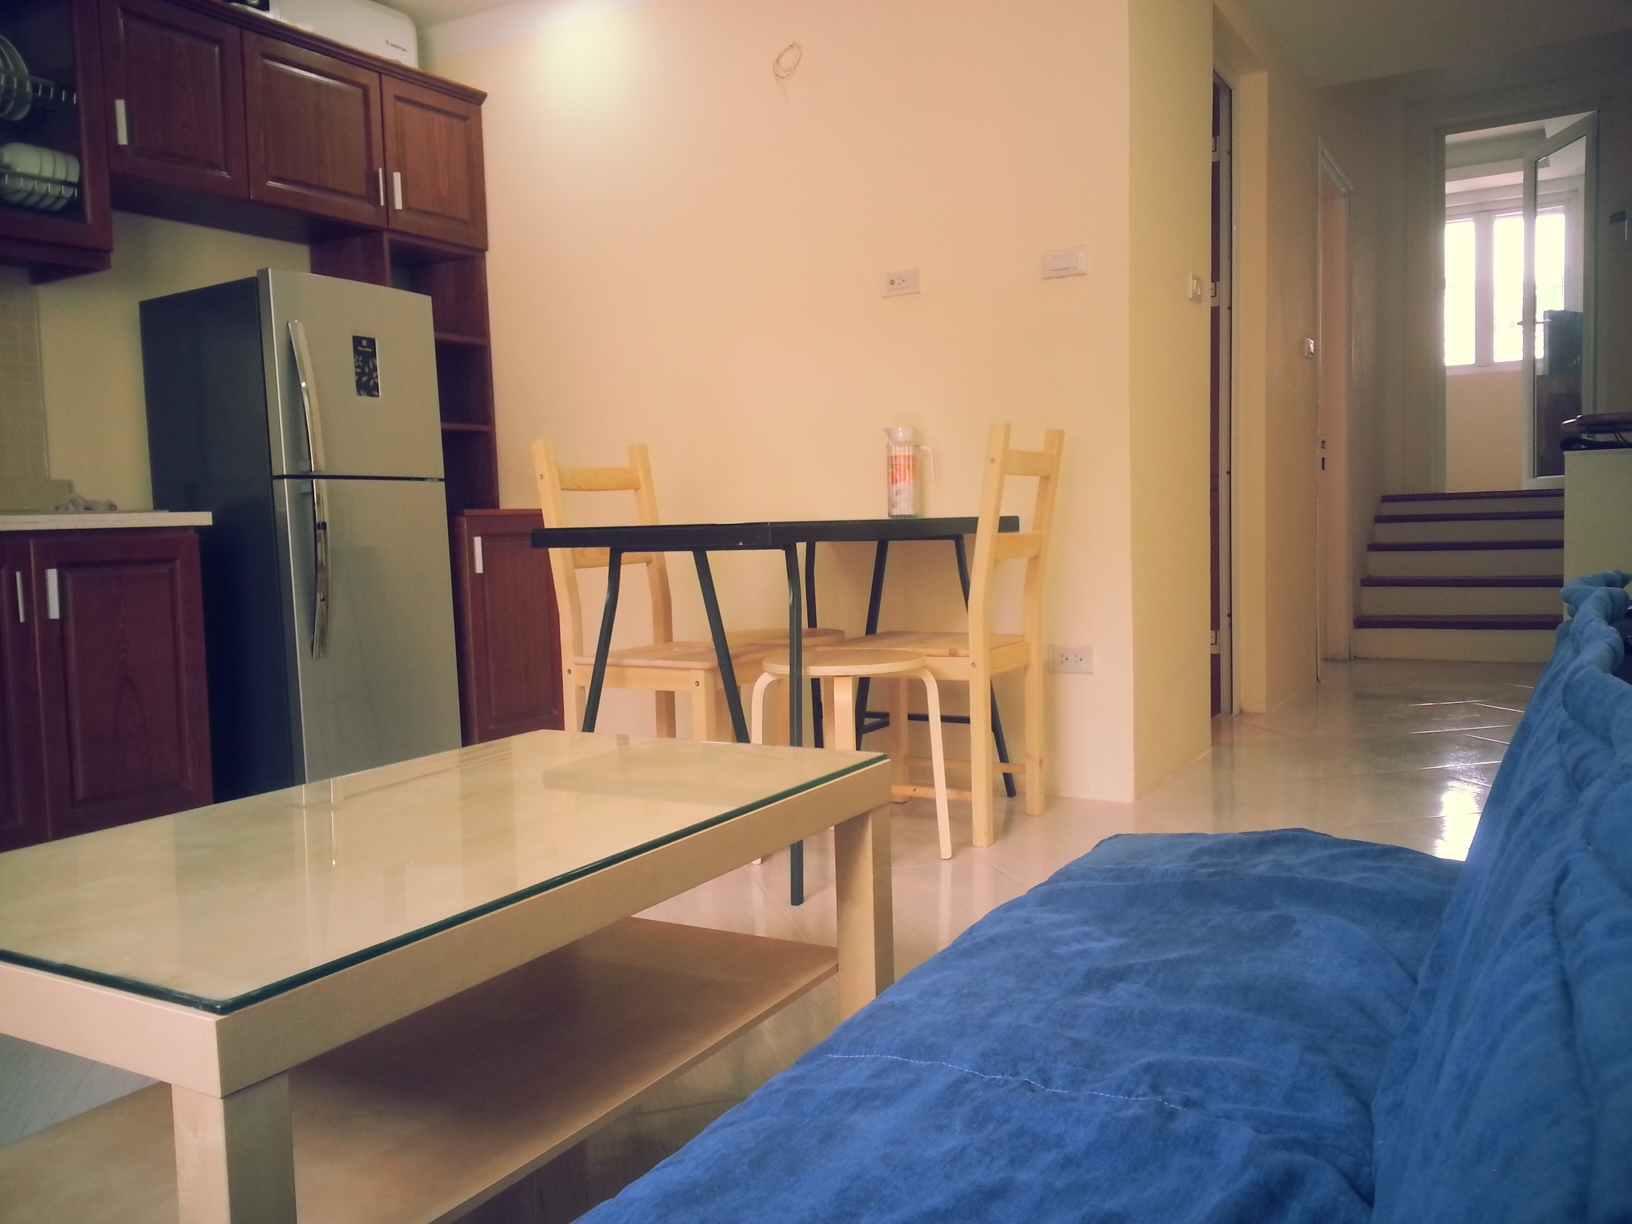 A nice and cheap apartment with full furniture for rent in Tay Ho district